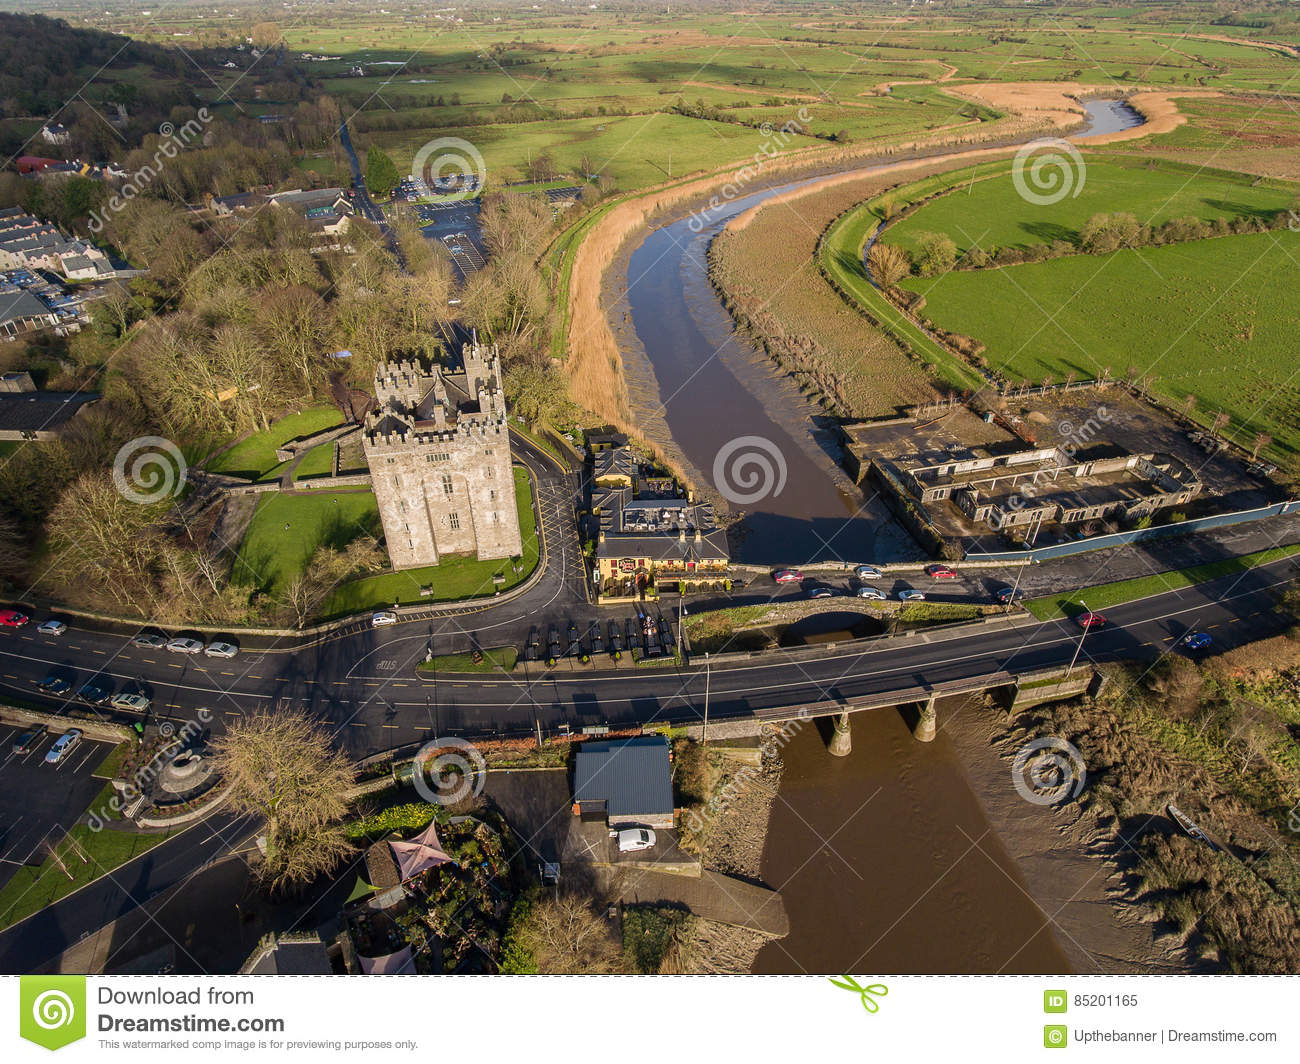 Bunratty Castle and Durty Nelly`s Pub, Ireland - Jan 31st 2017: Aerial view of Ireland`s most famous Castle and Irish Pub.